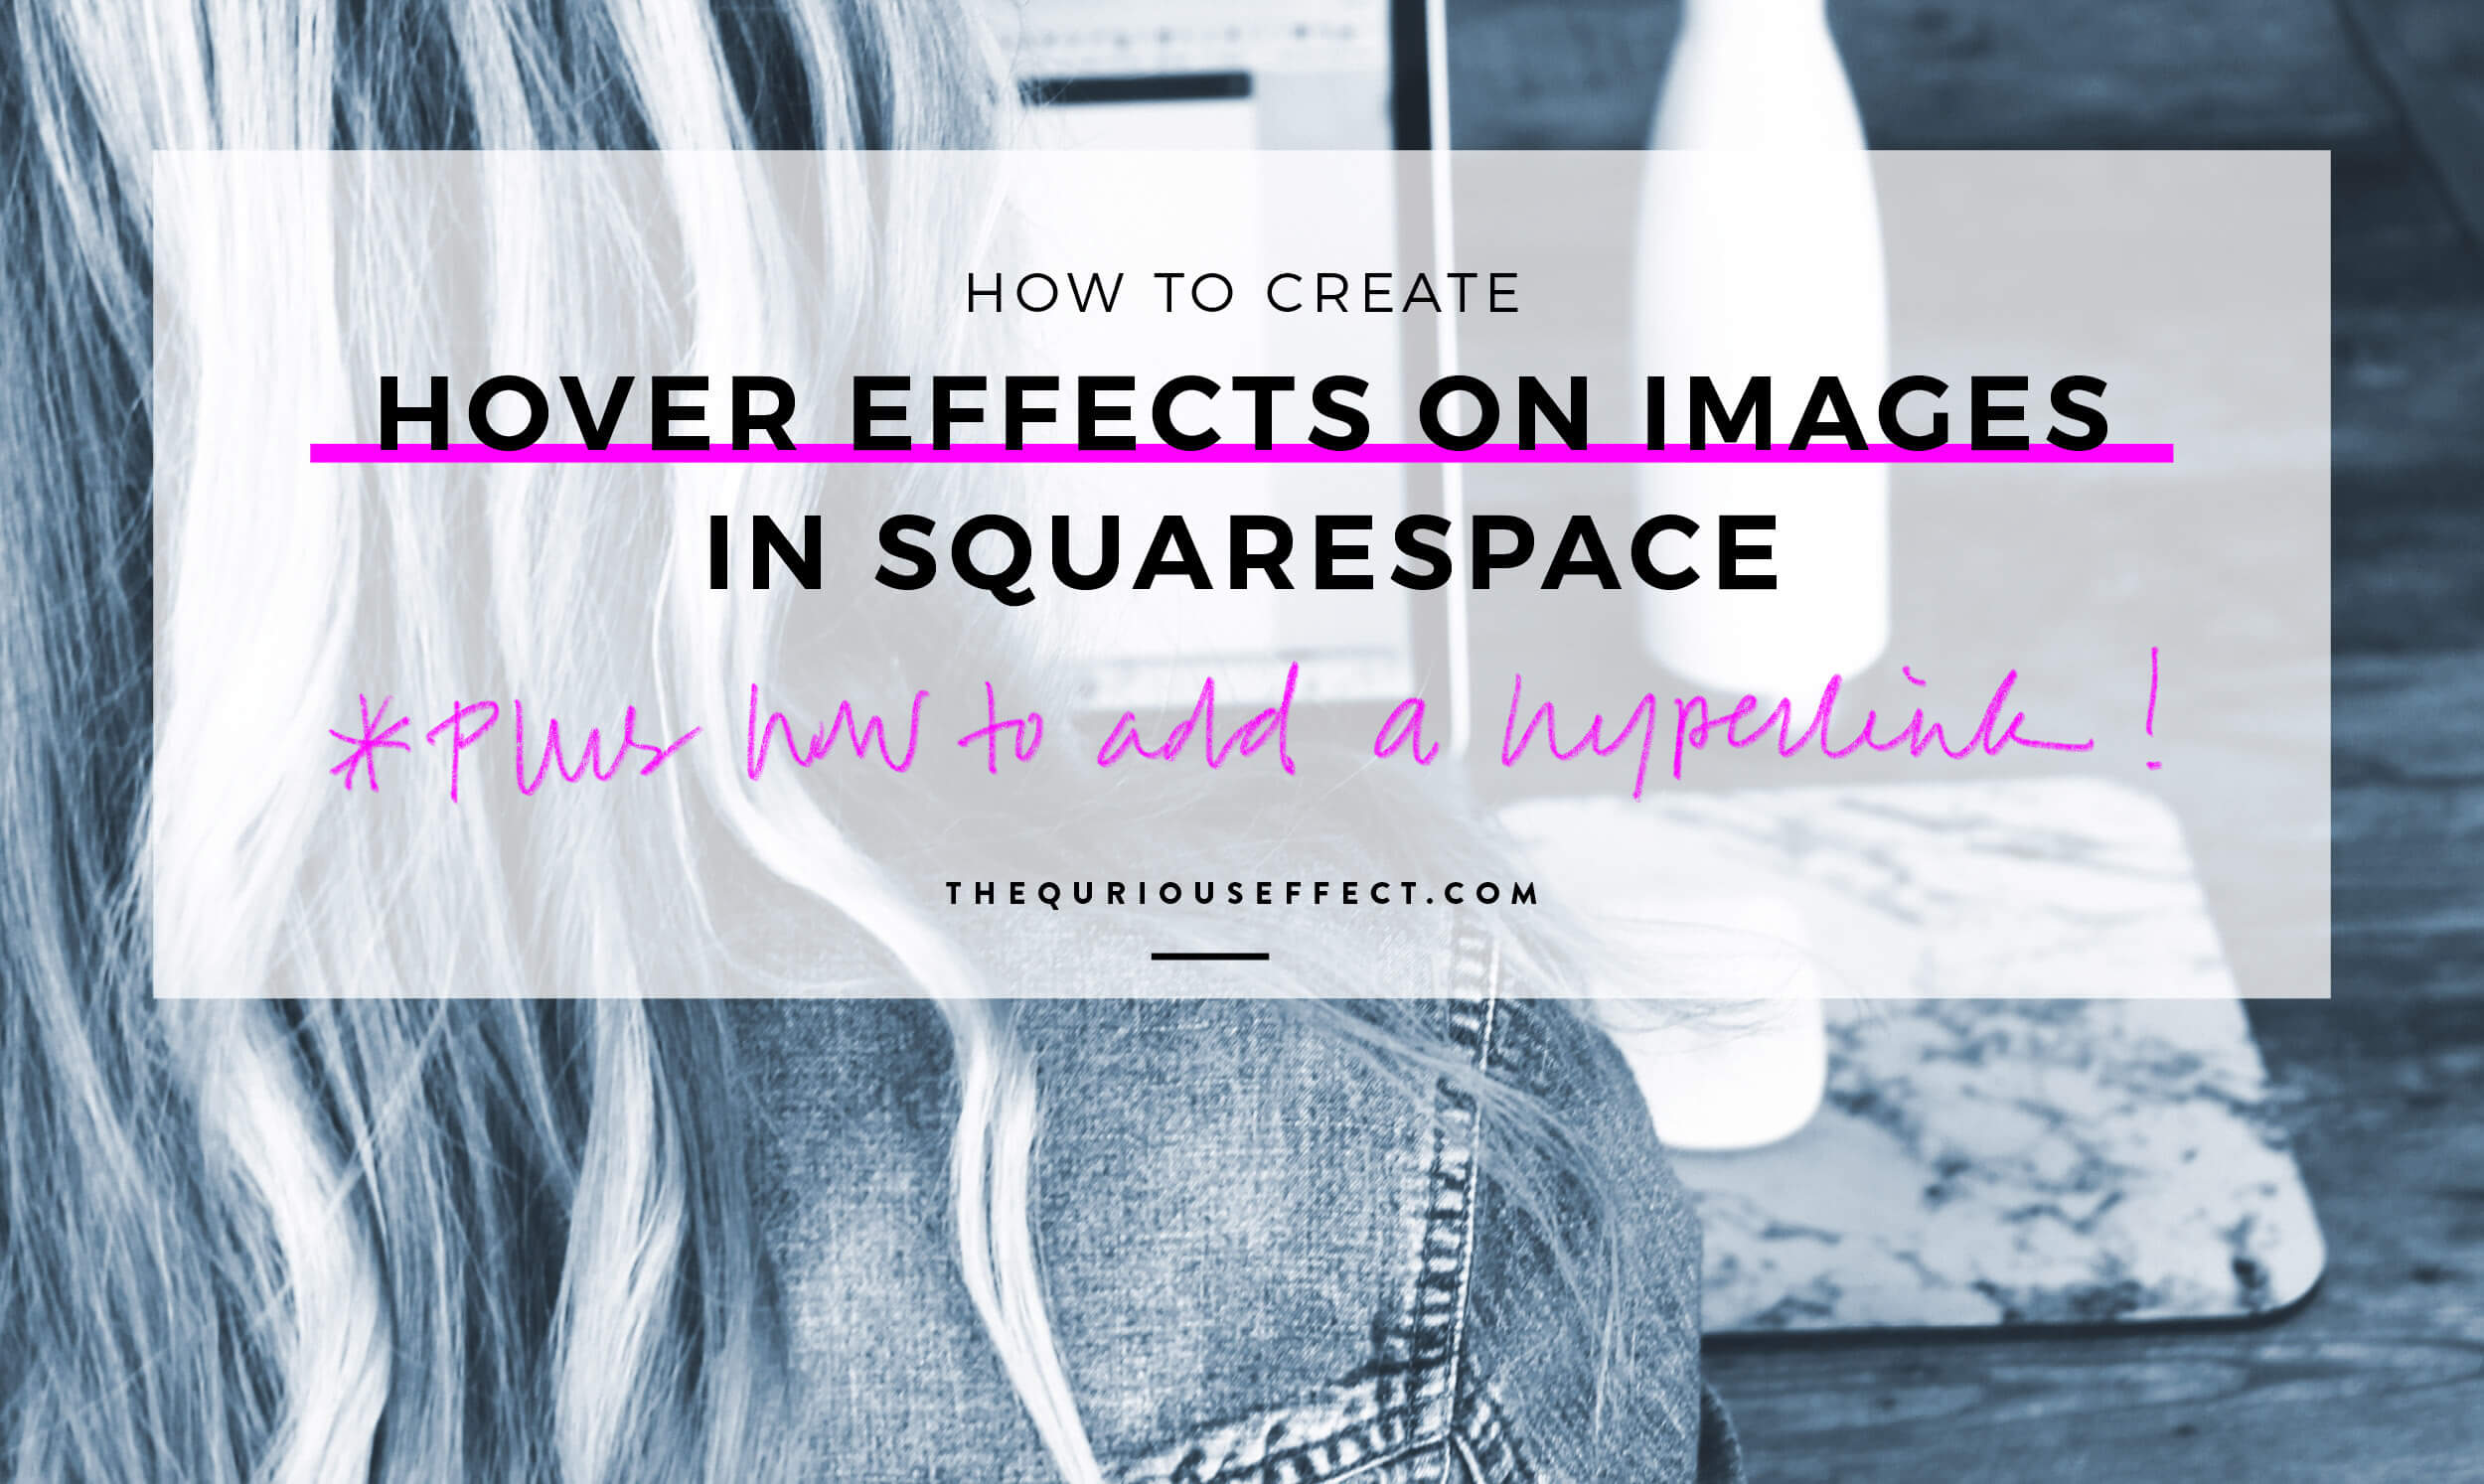 How to Create Hover Effects with Hyperlinks on Images in Squarespace. A blog post by The Qurious Effect, a Squarespace web design studio.